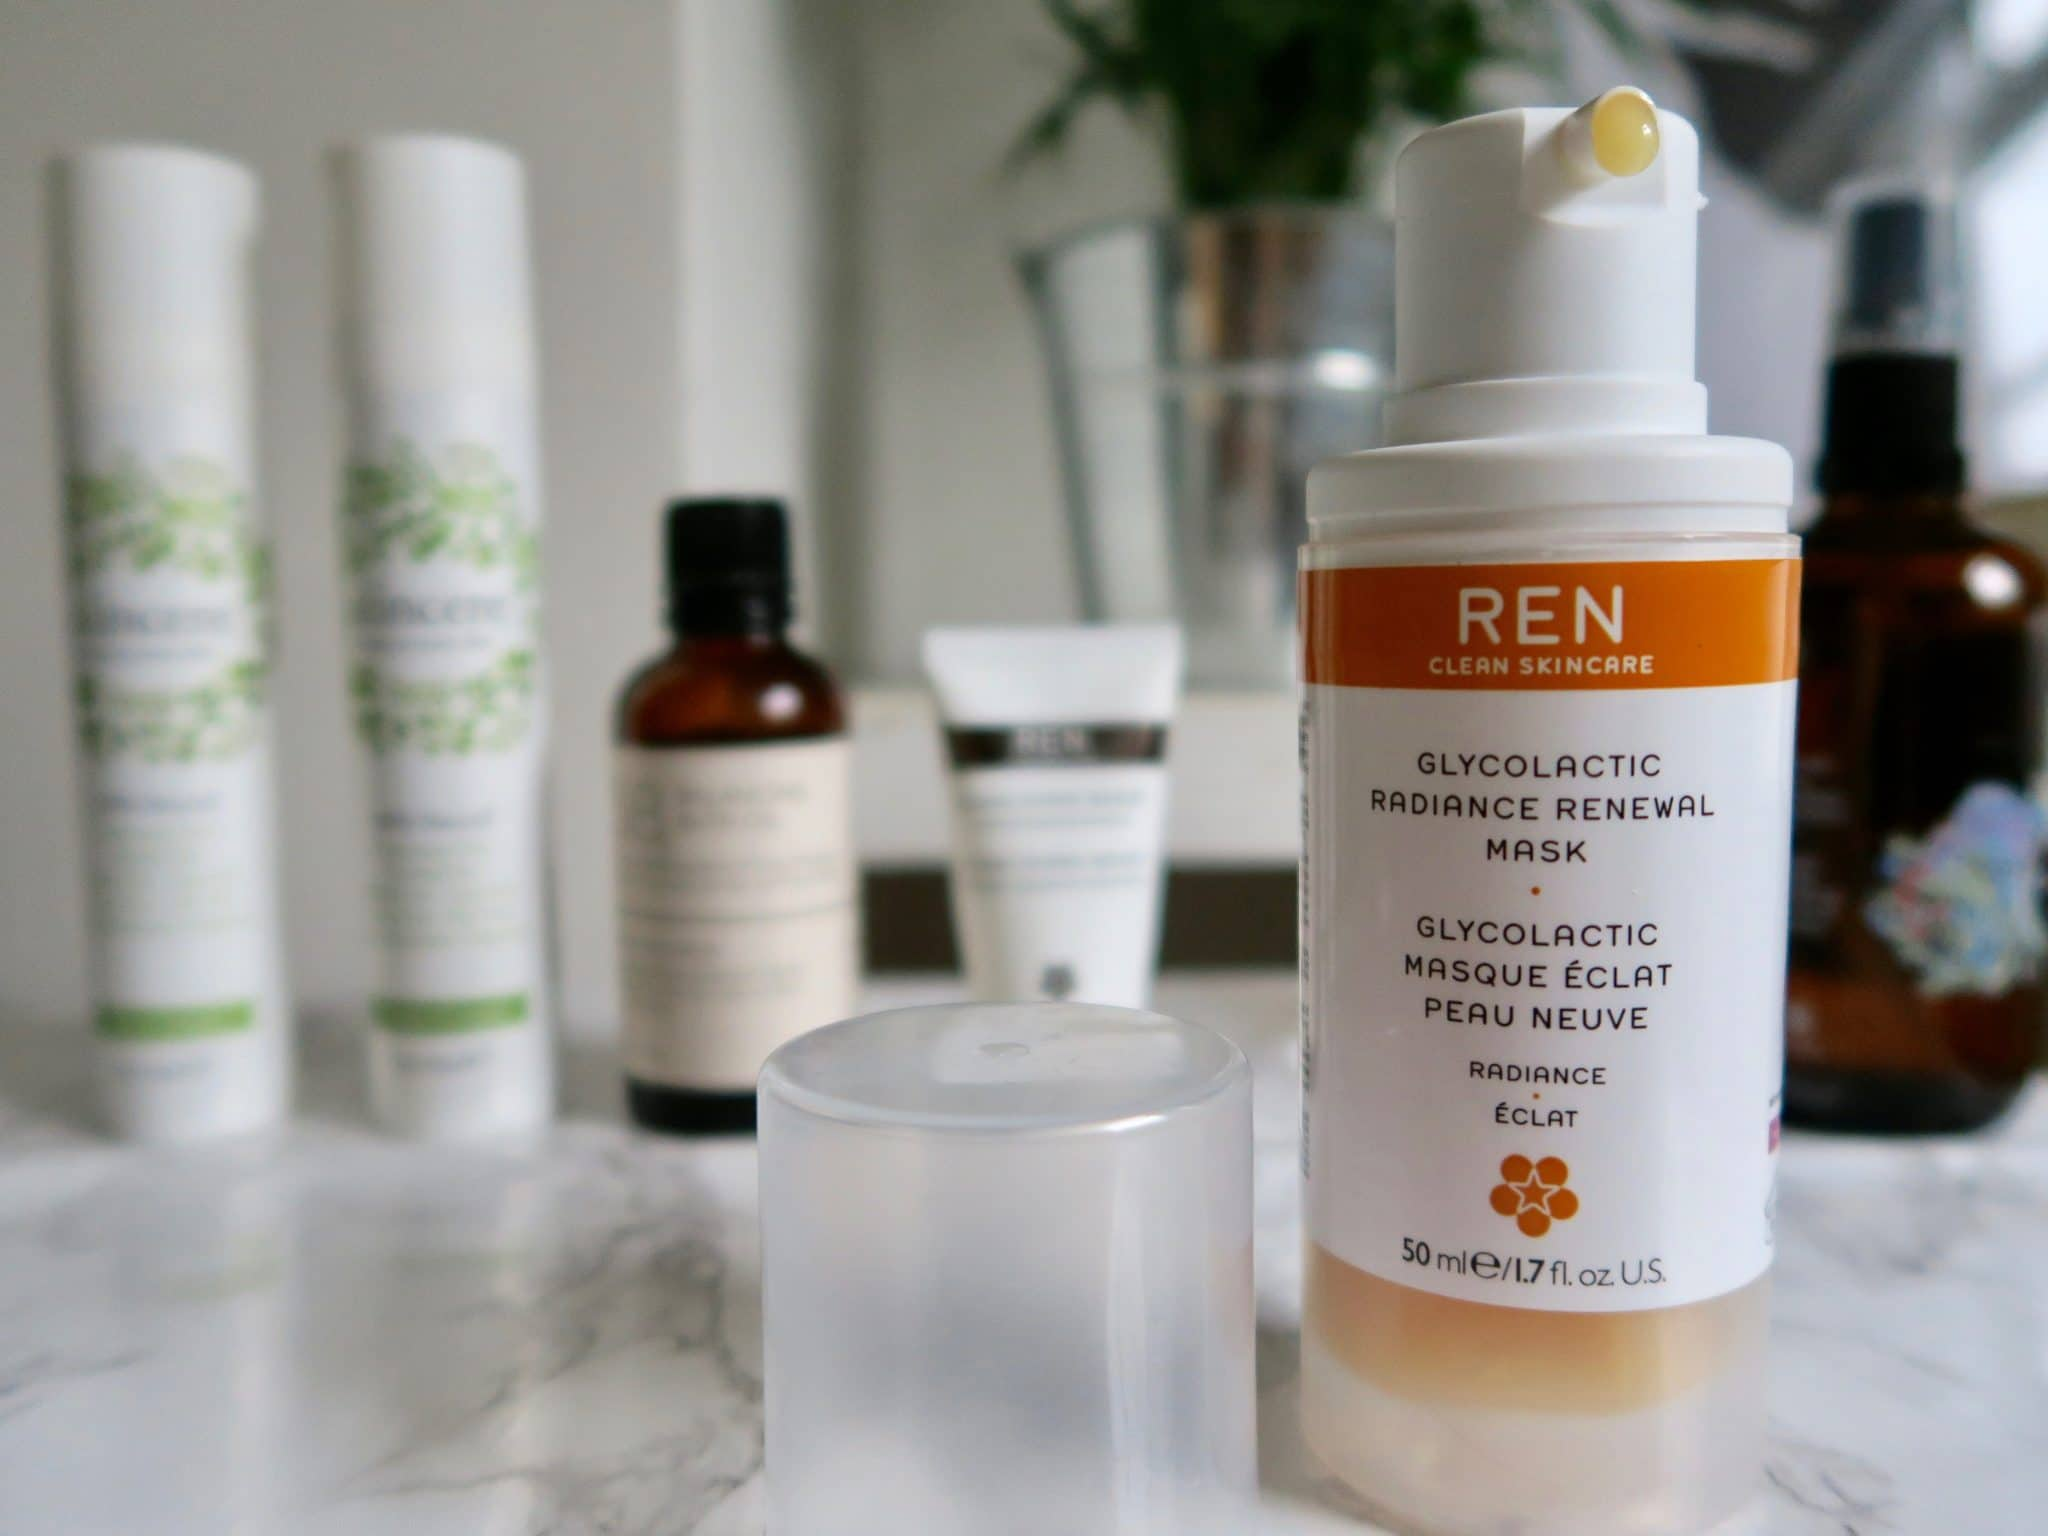 REN Skincare Glycolactic Face Mask Review